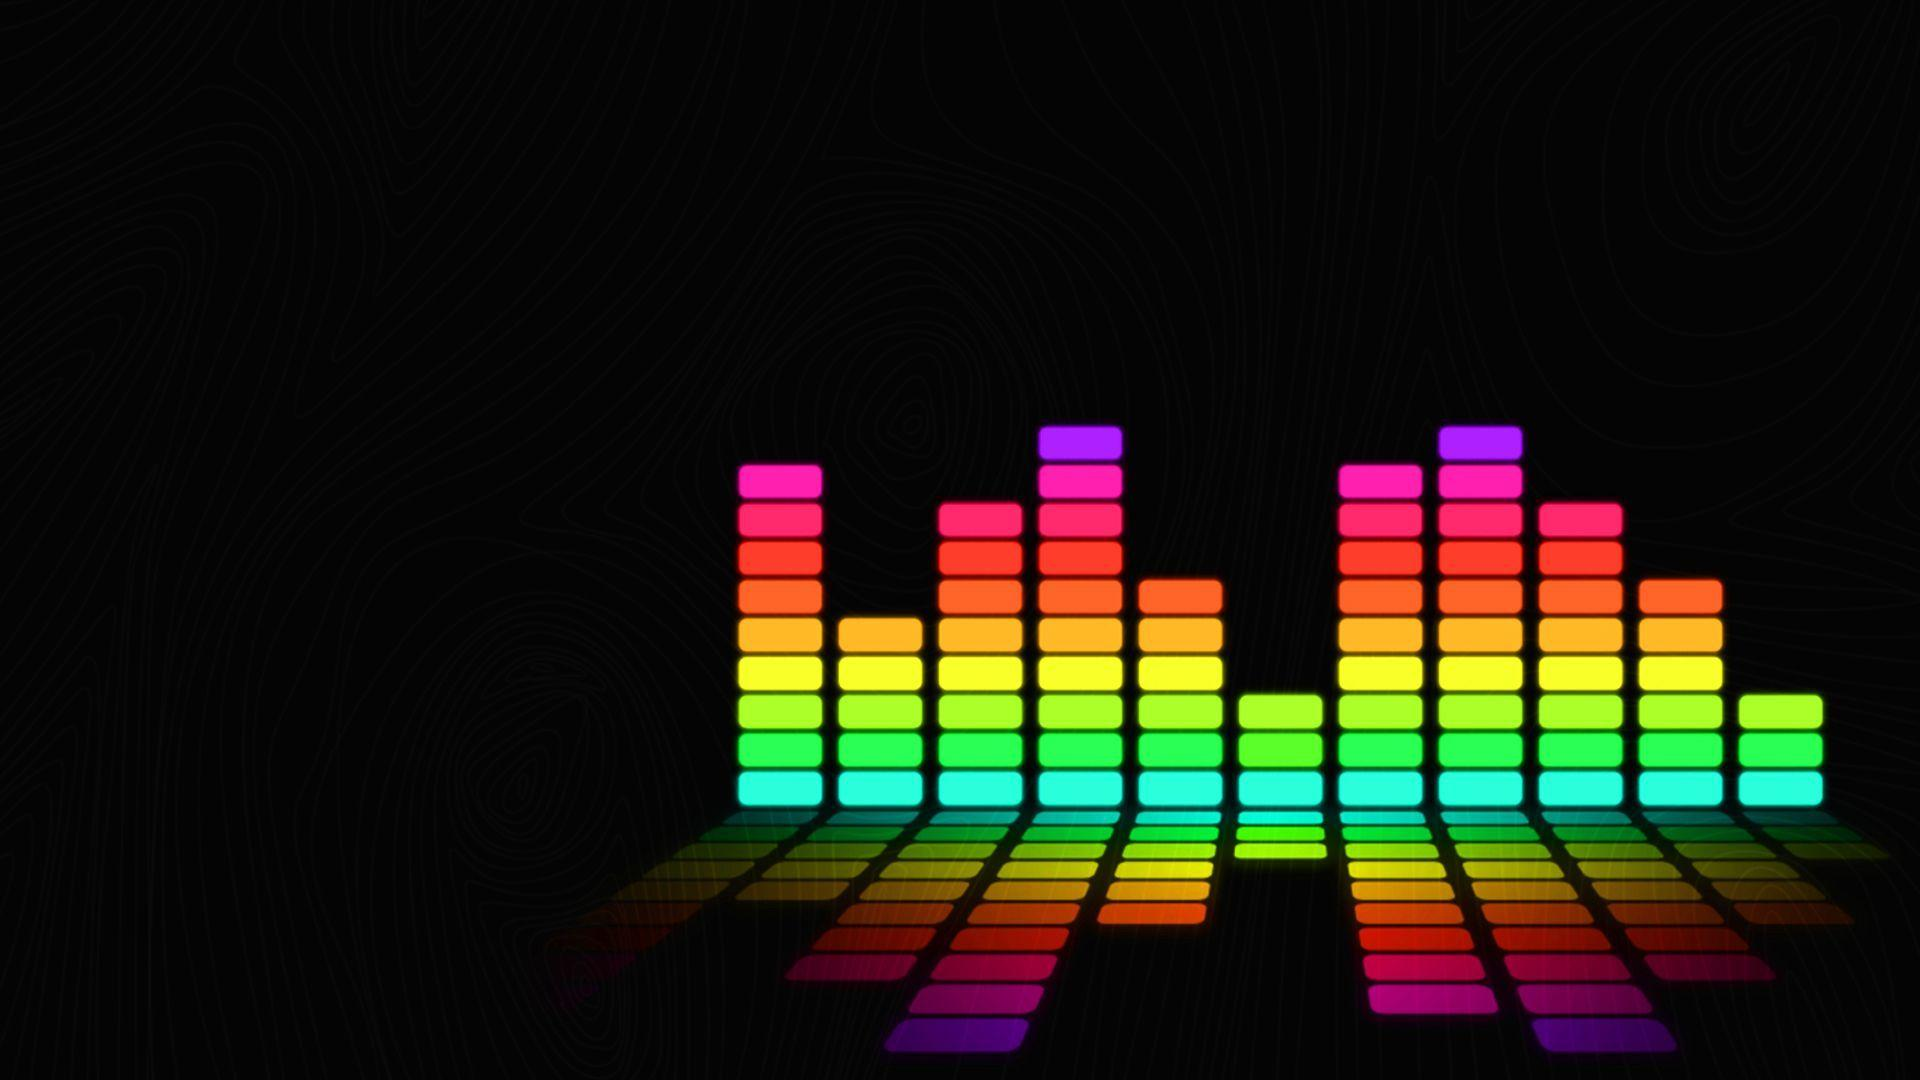 Music Backgrounds Music Desktop Background Free Premium: Music Wallpapers 1920x1080